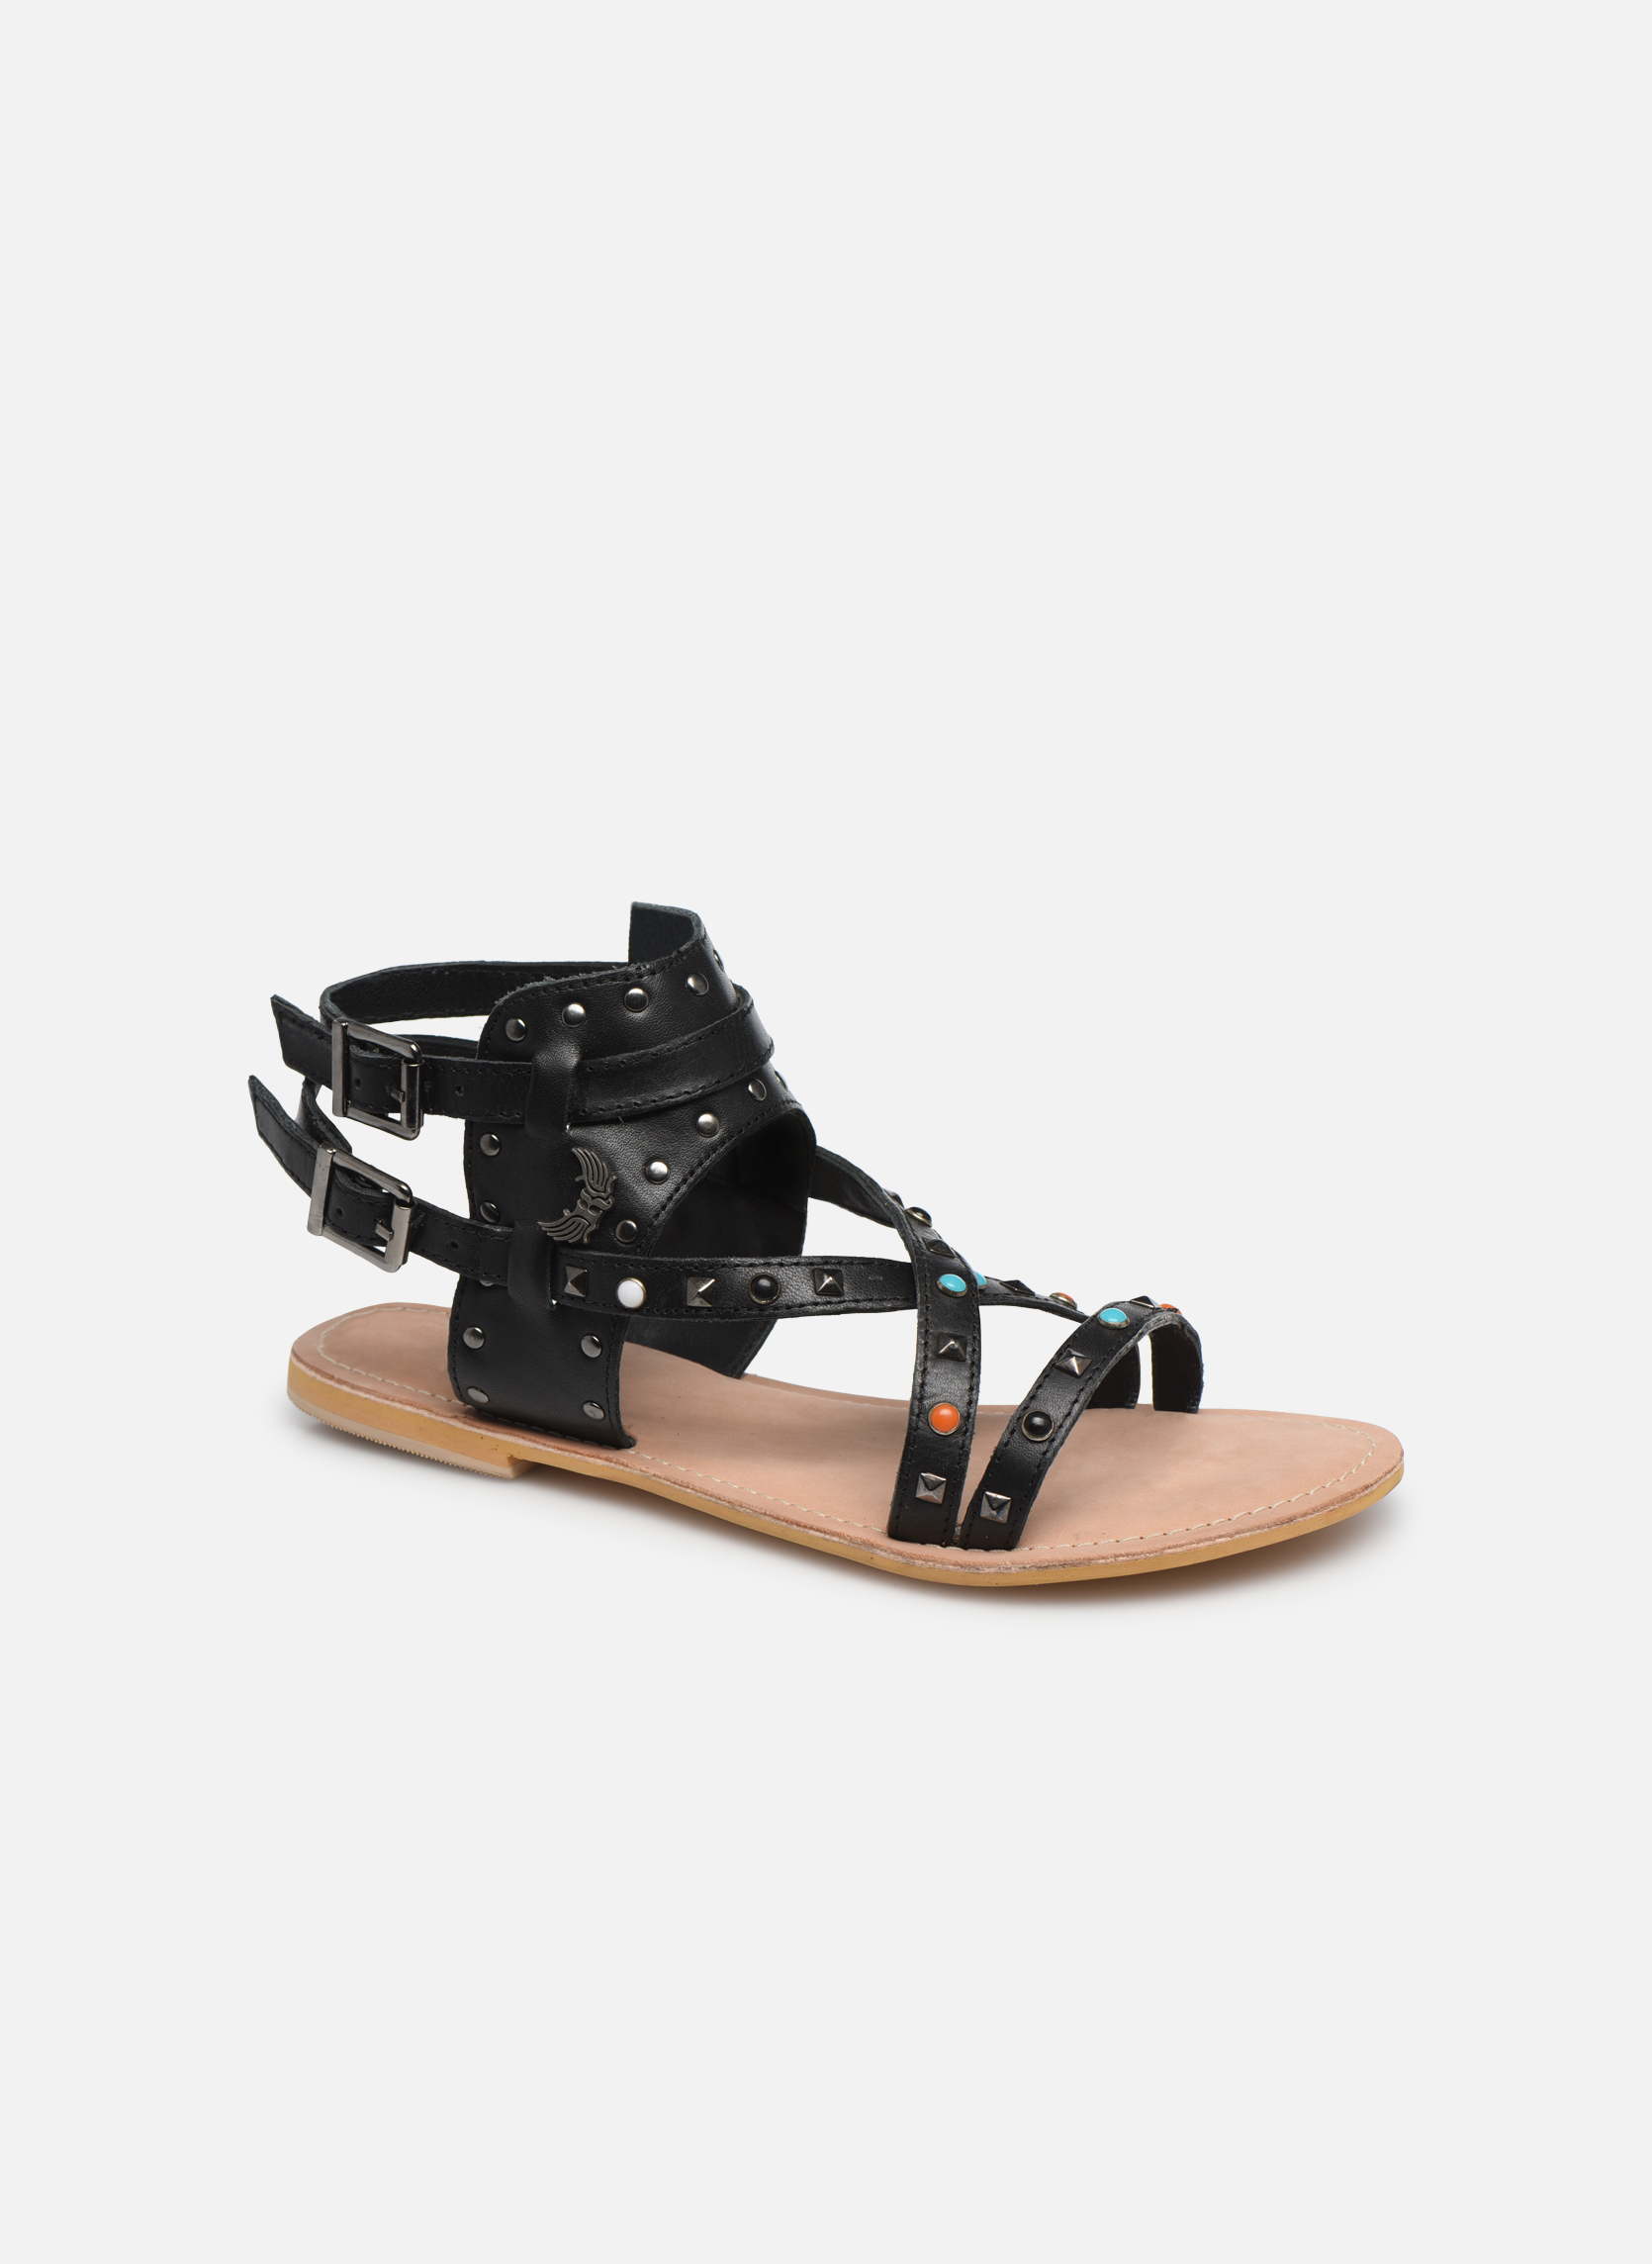 Sandalen Moore by Kaporal